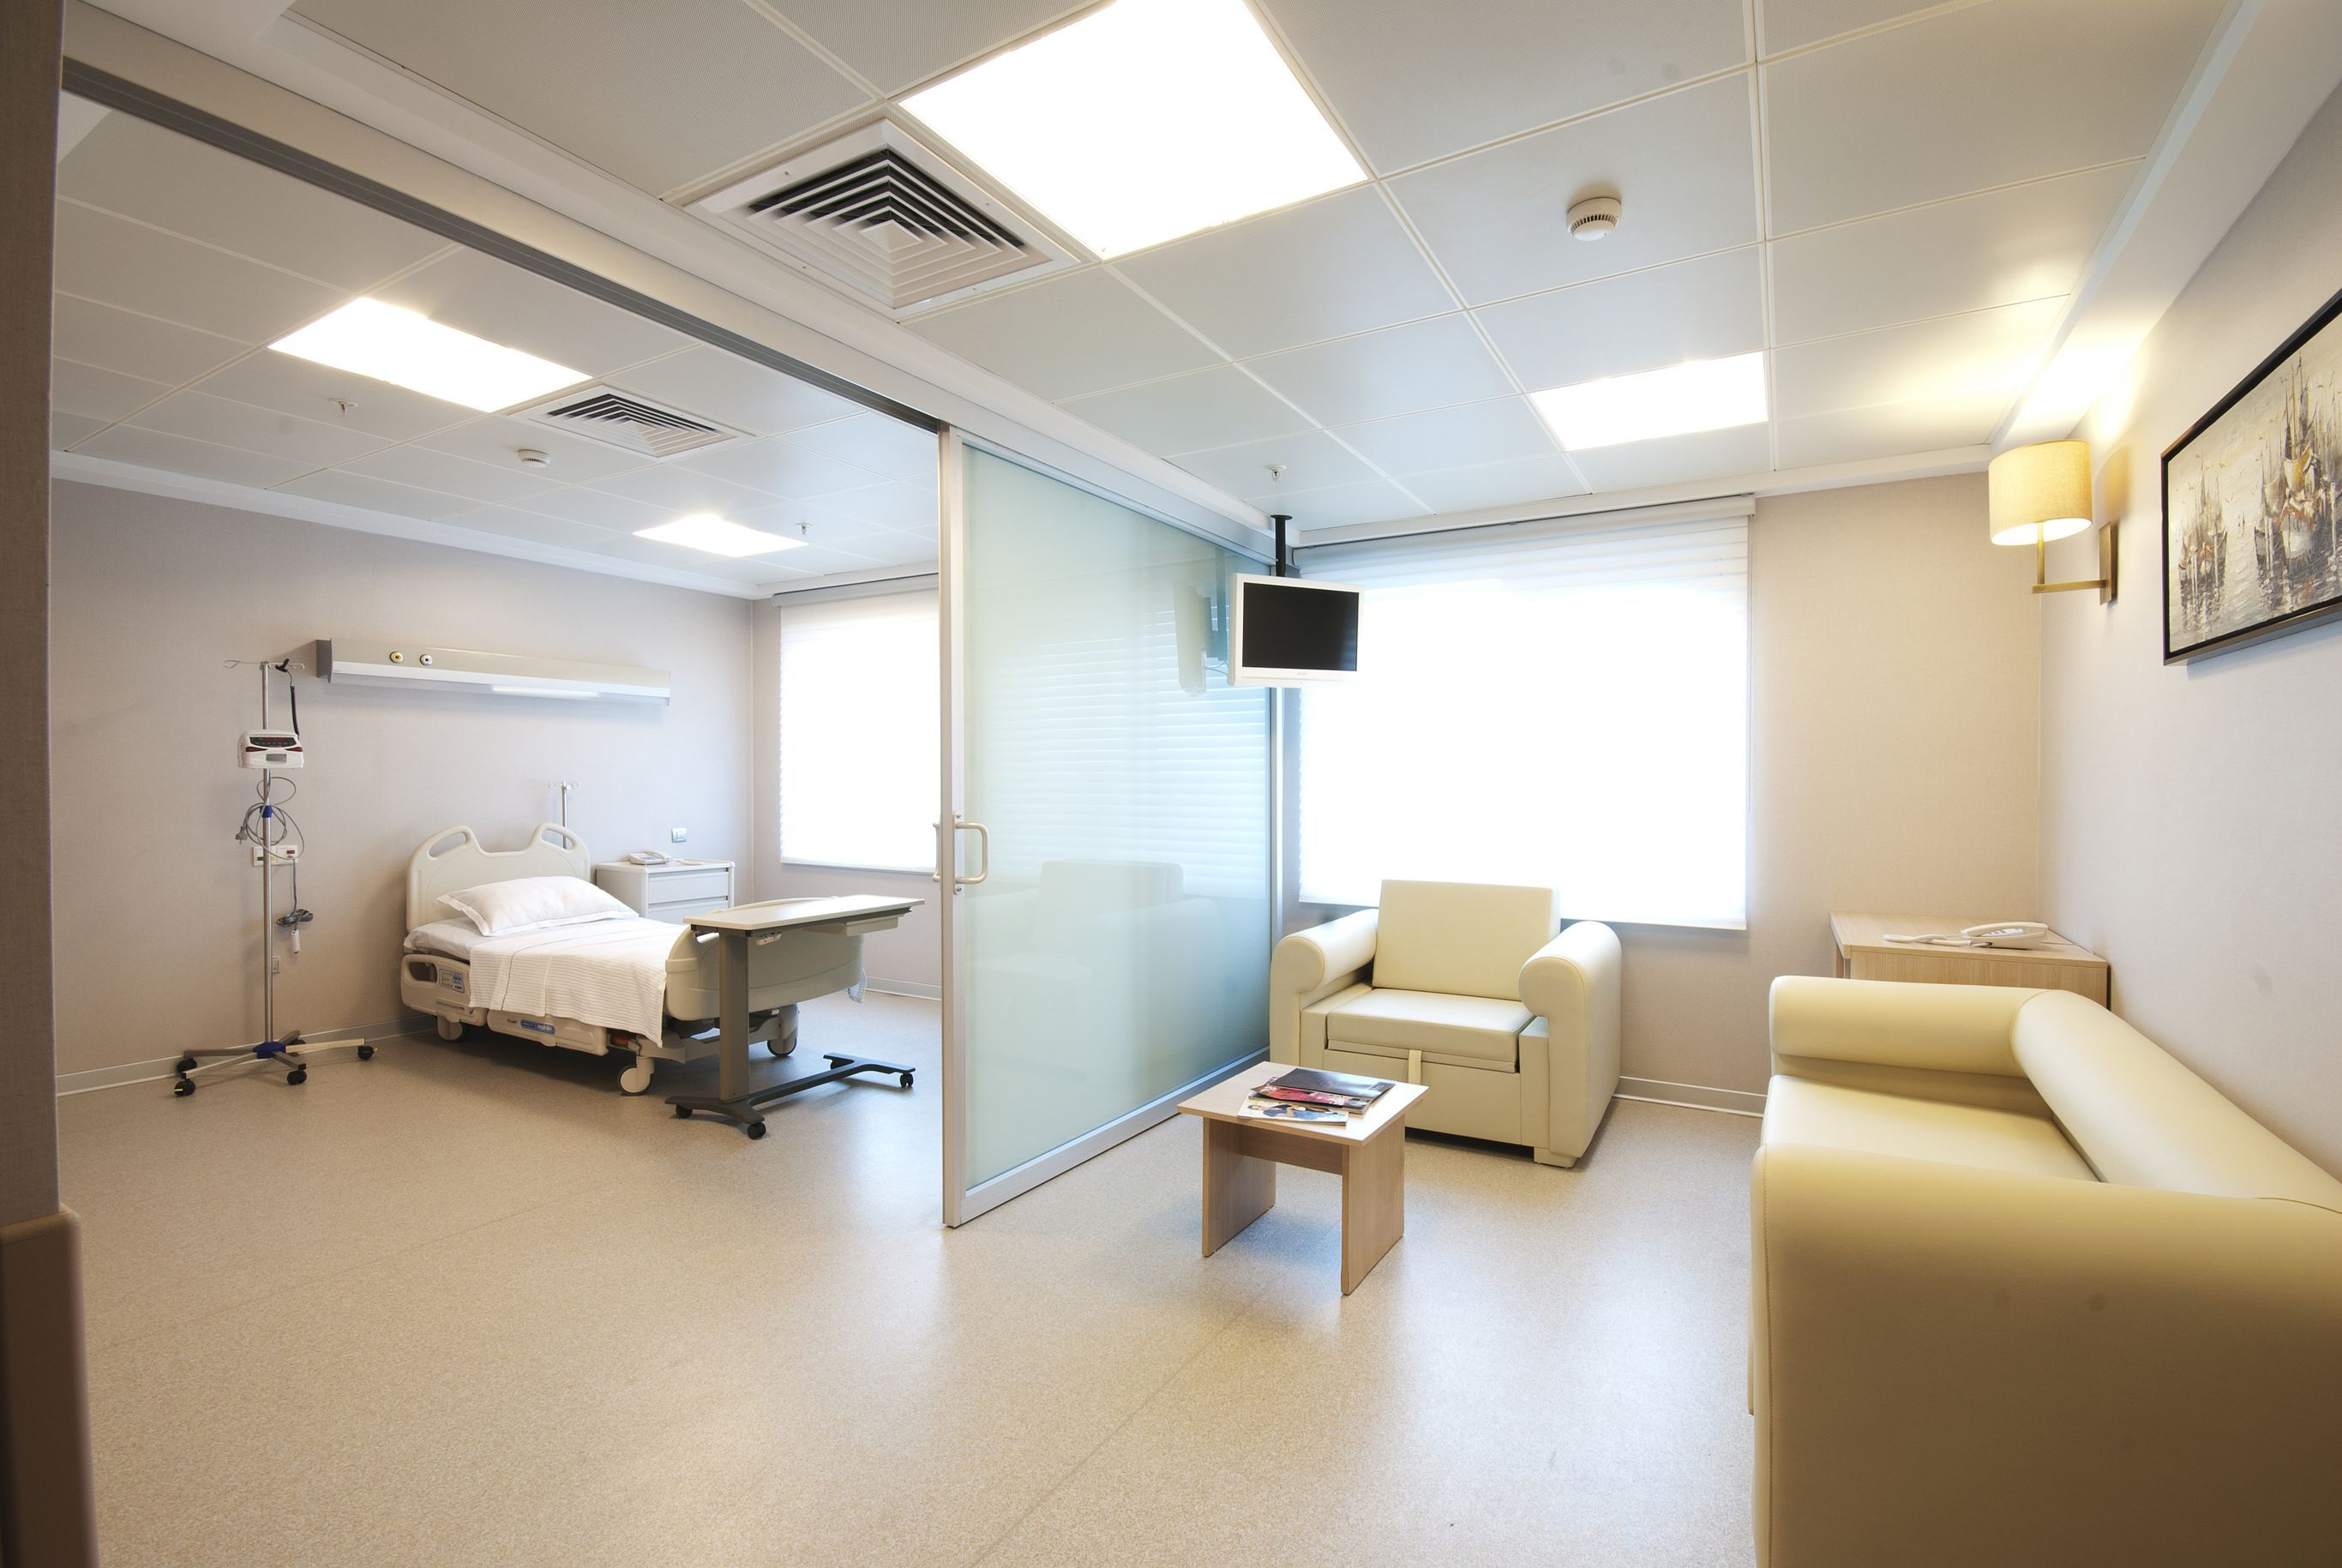 Beautiful Looking Of Modern Hospital Design Room - Indoor ...